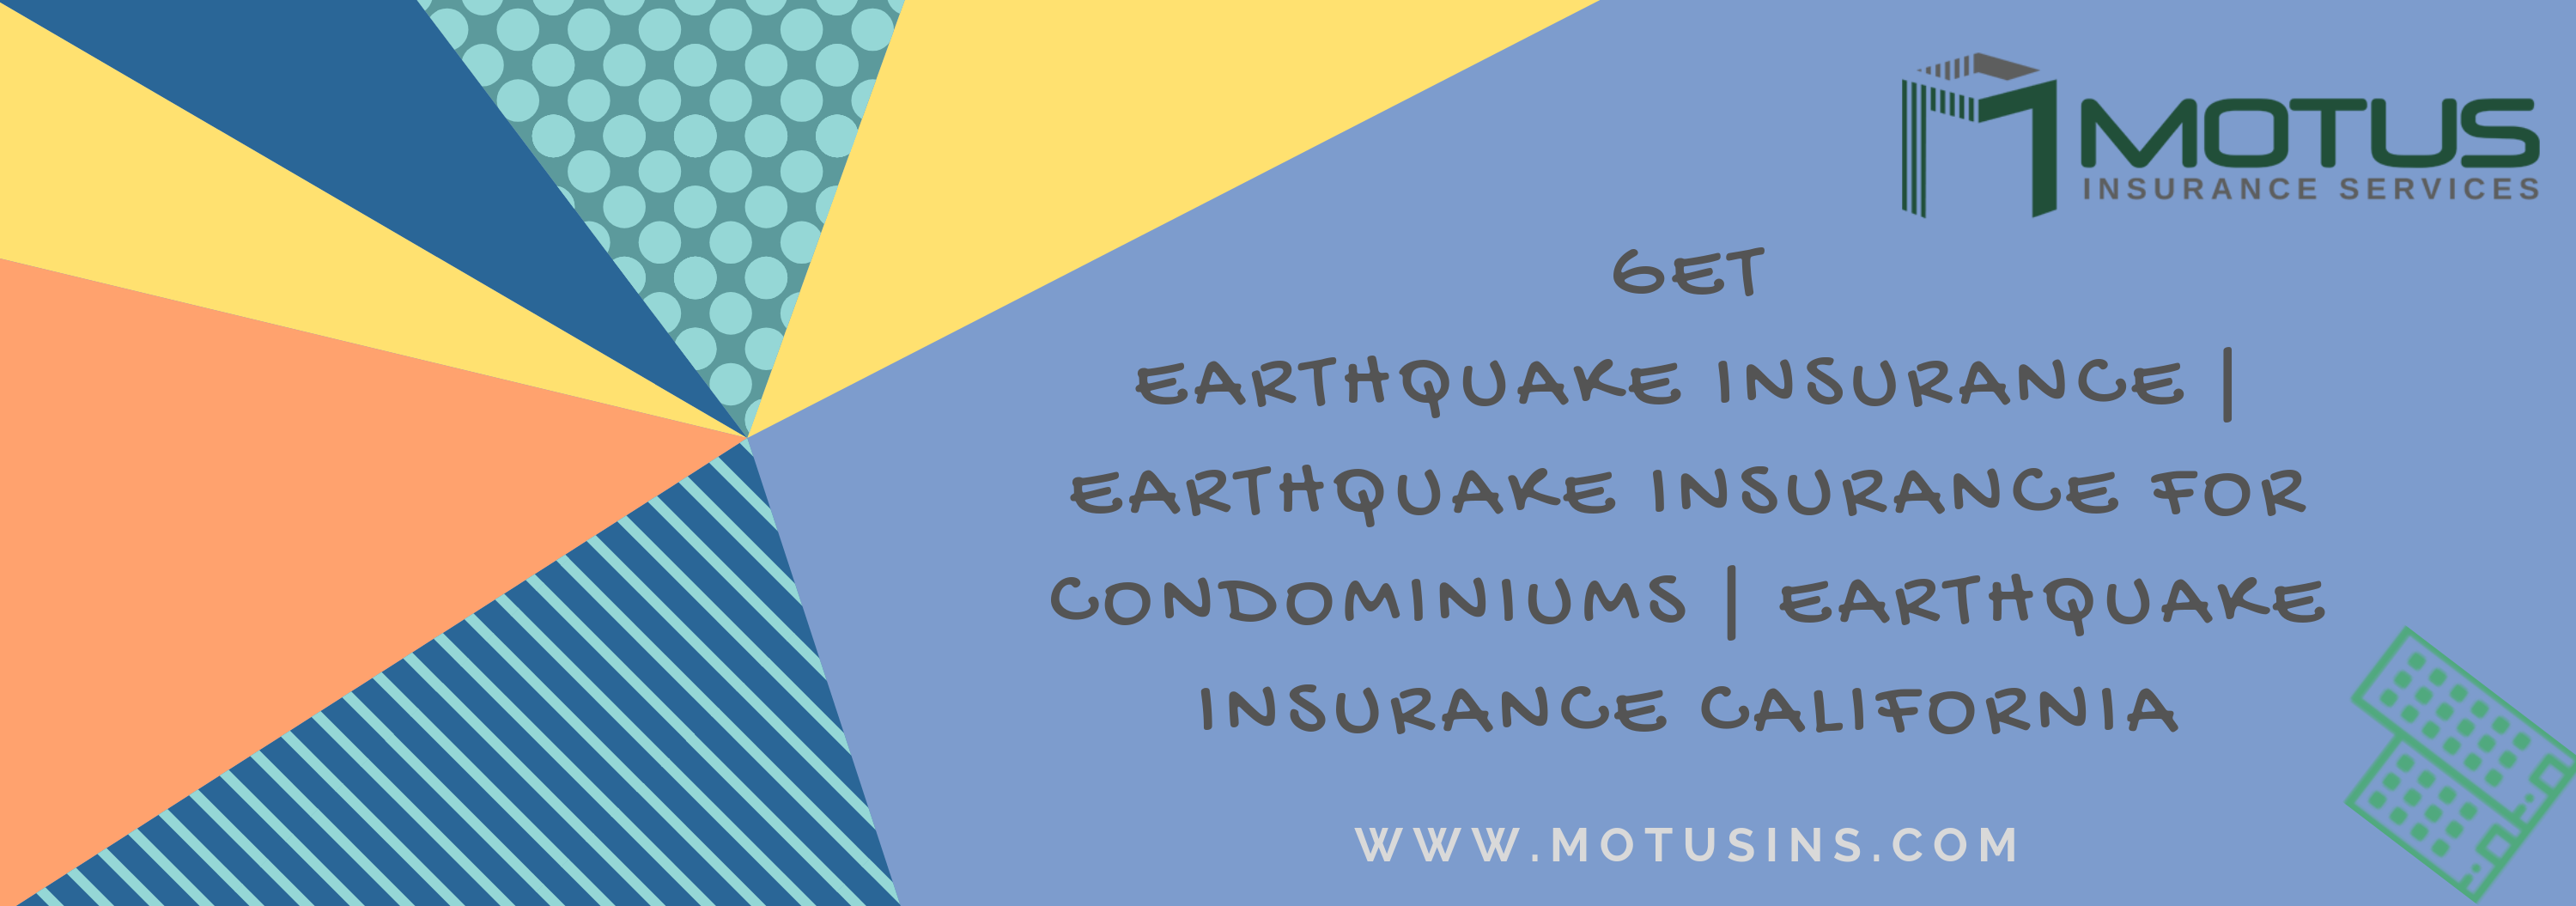 Get Earthquake Insurance Earthquake Insurance For Condominiums